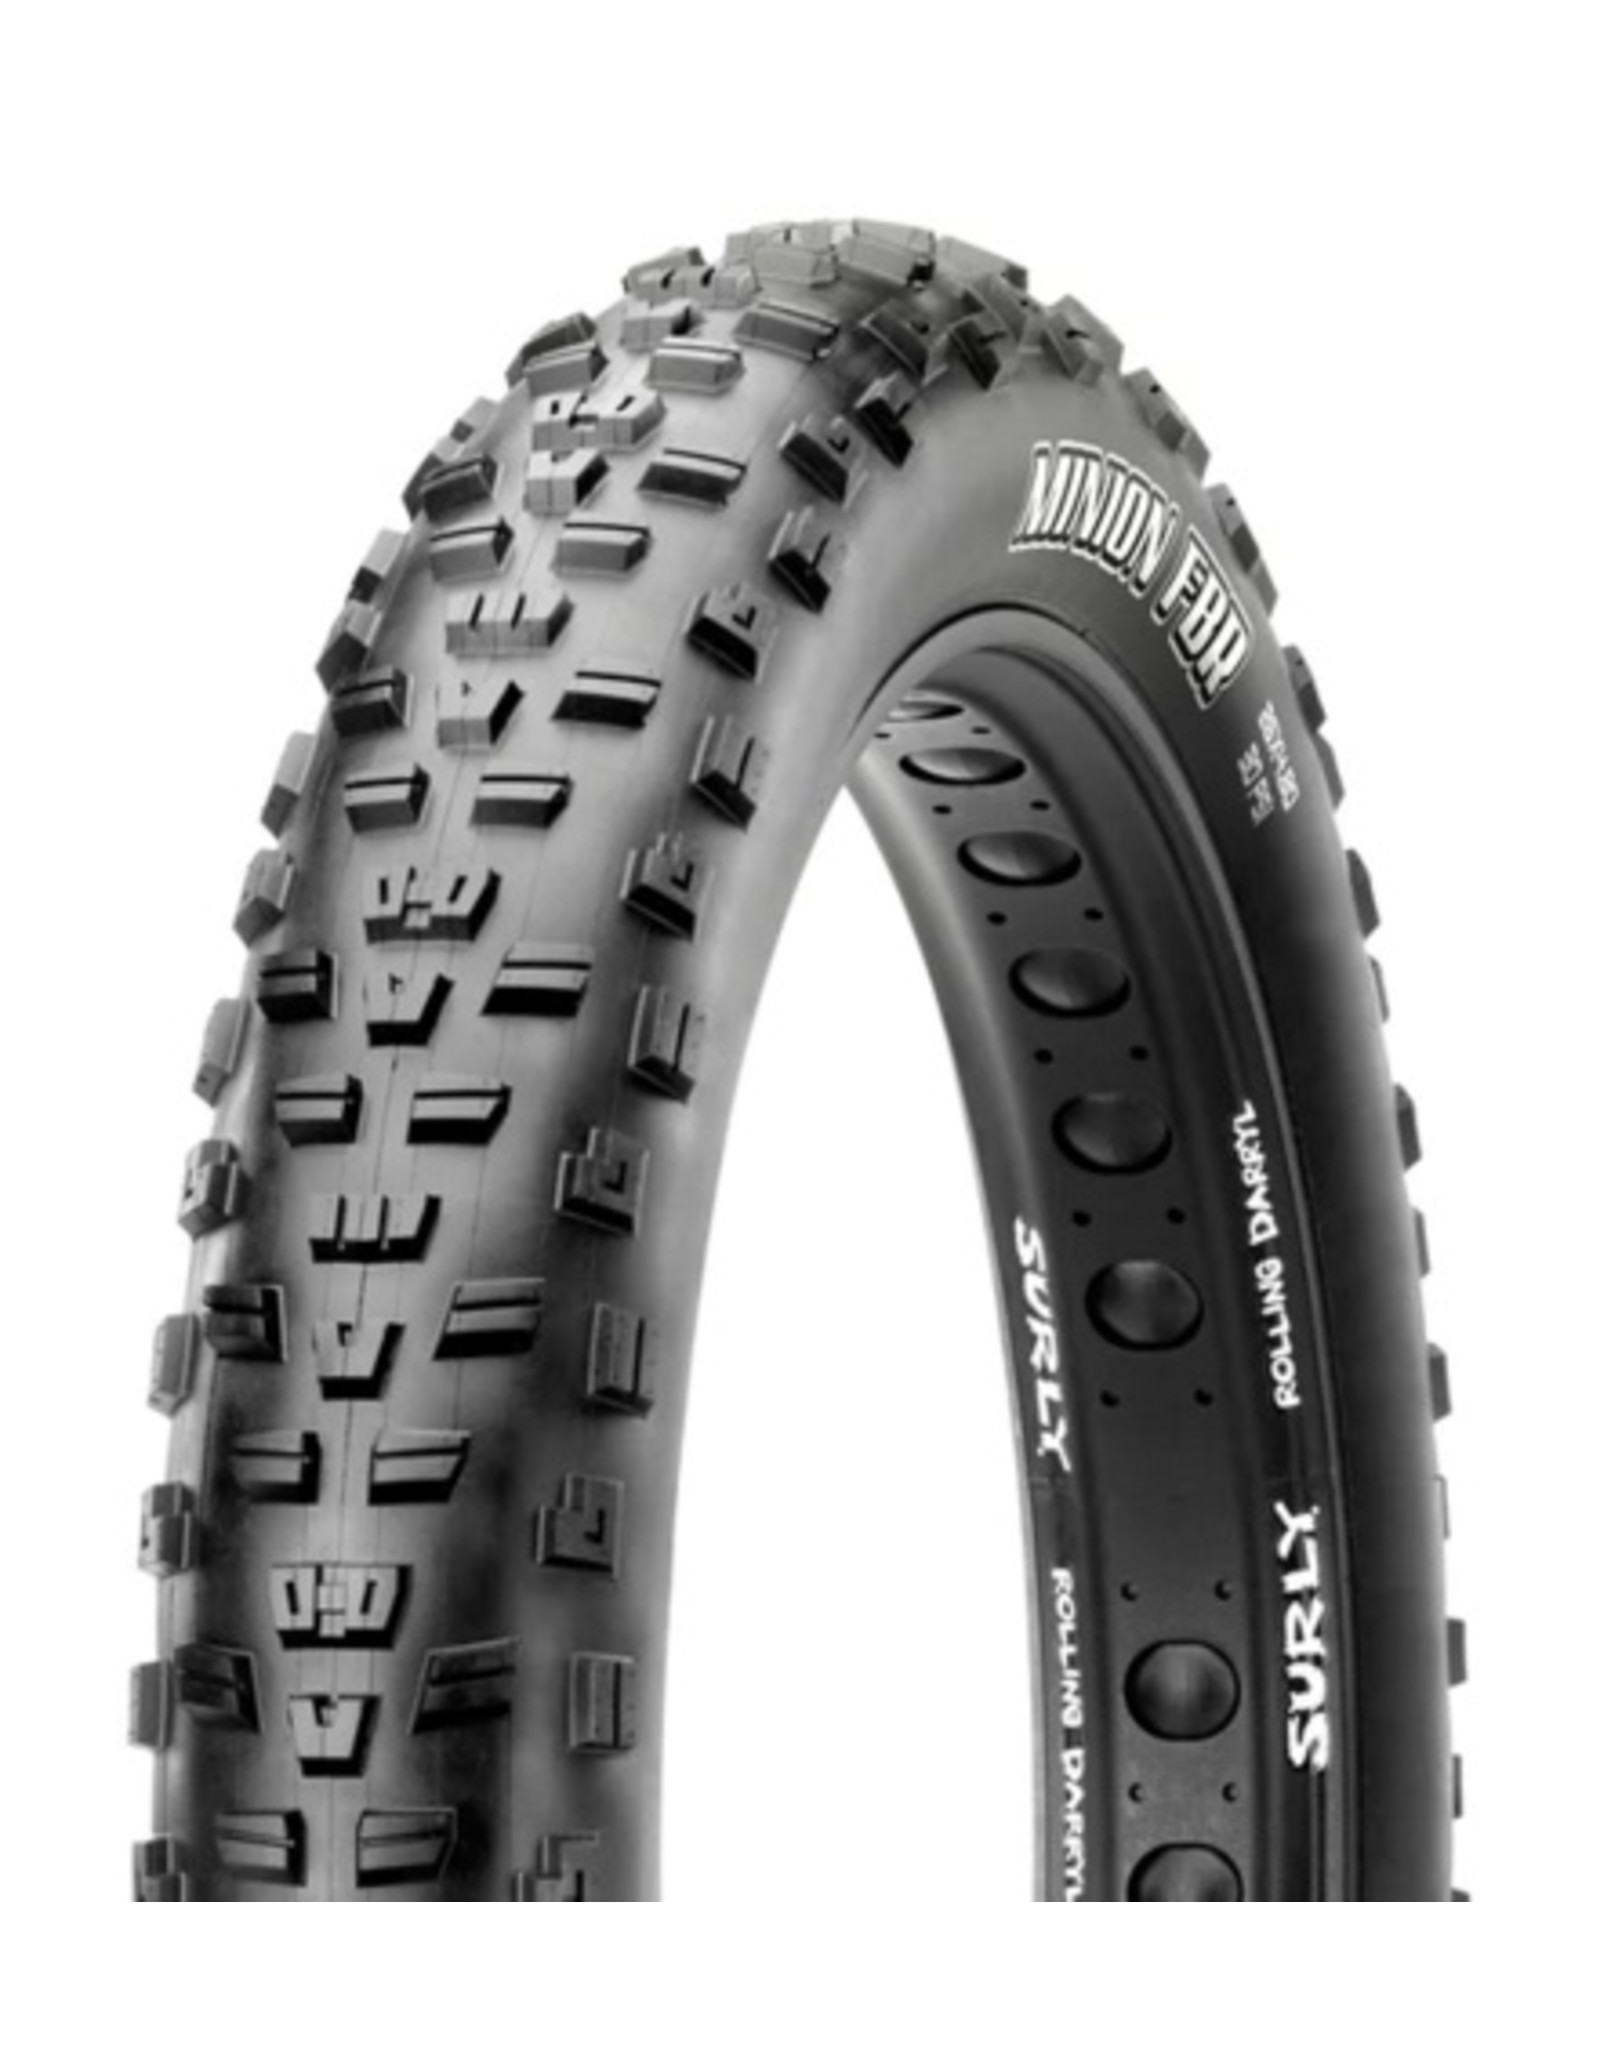 Maxxis Maxxis, Minion FBR, 26x4.80, Foldable, Dual, EXO, Tubeless Ready, 120TPI, Black